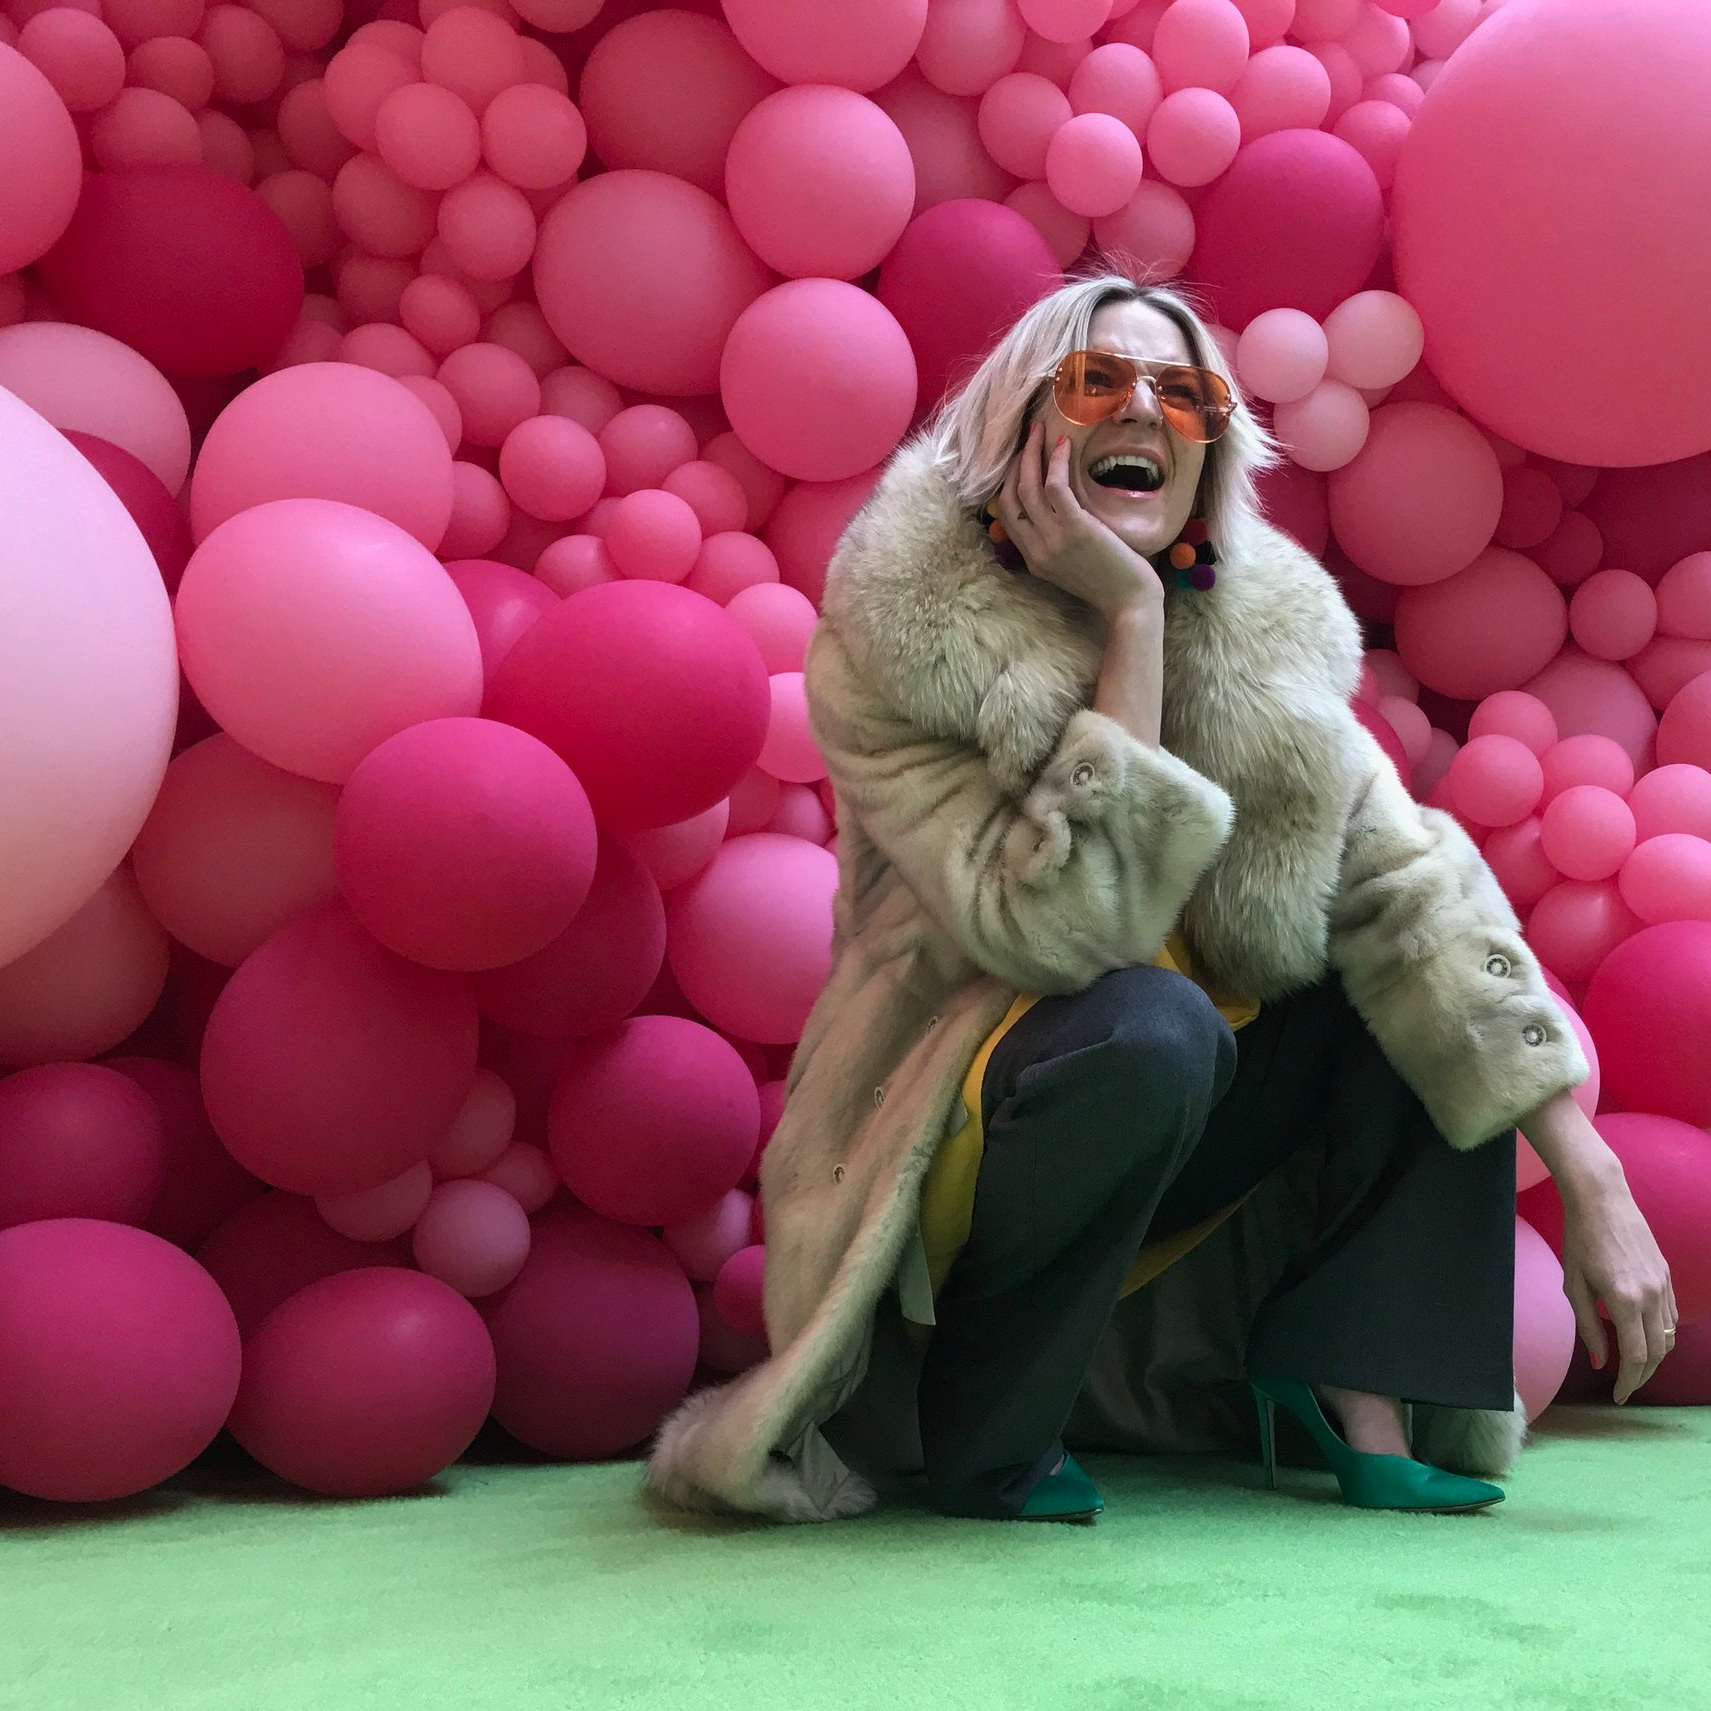 Credits: Photo - Anonymous, Styling - Sarah G. Schmidt, Location - #CHROMAYYC, Artist - Giant Balloon Fix and Art Installation by  #mariagalura  aka DINA  #calgaryparty50